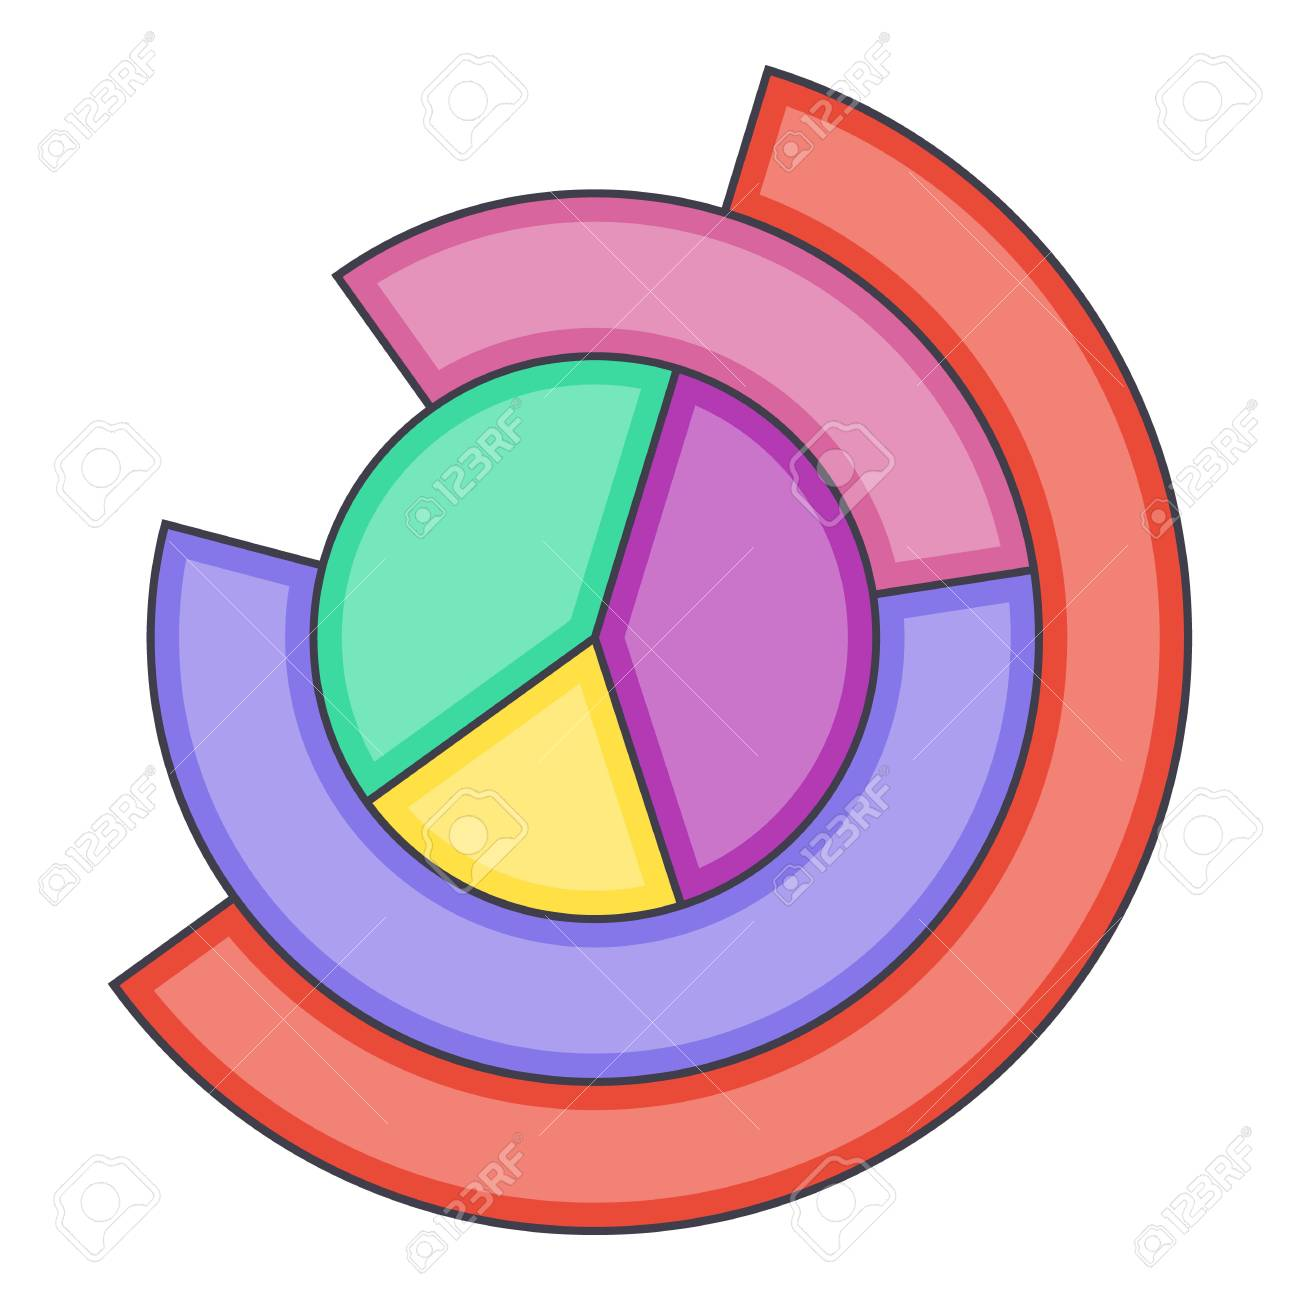 business pie chart icon. cartoon illustration of business pie